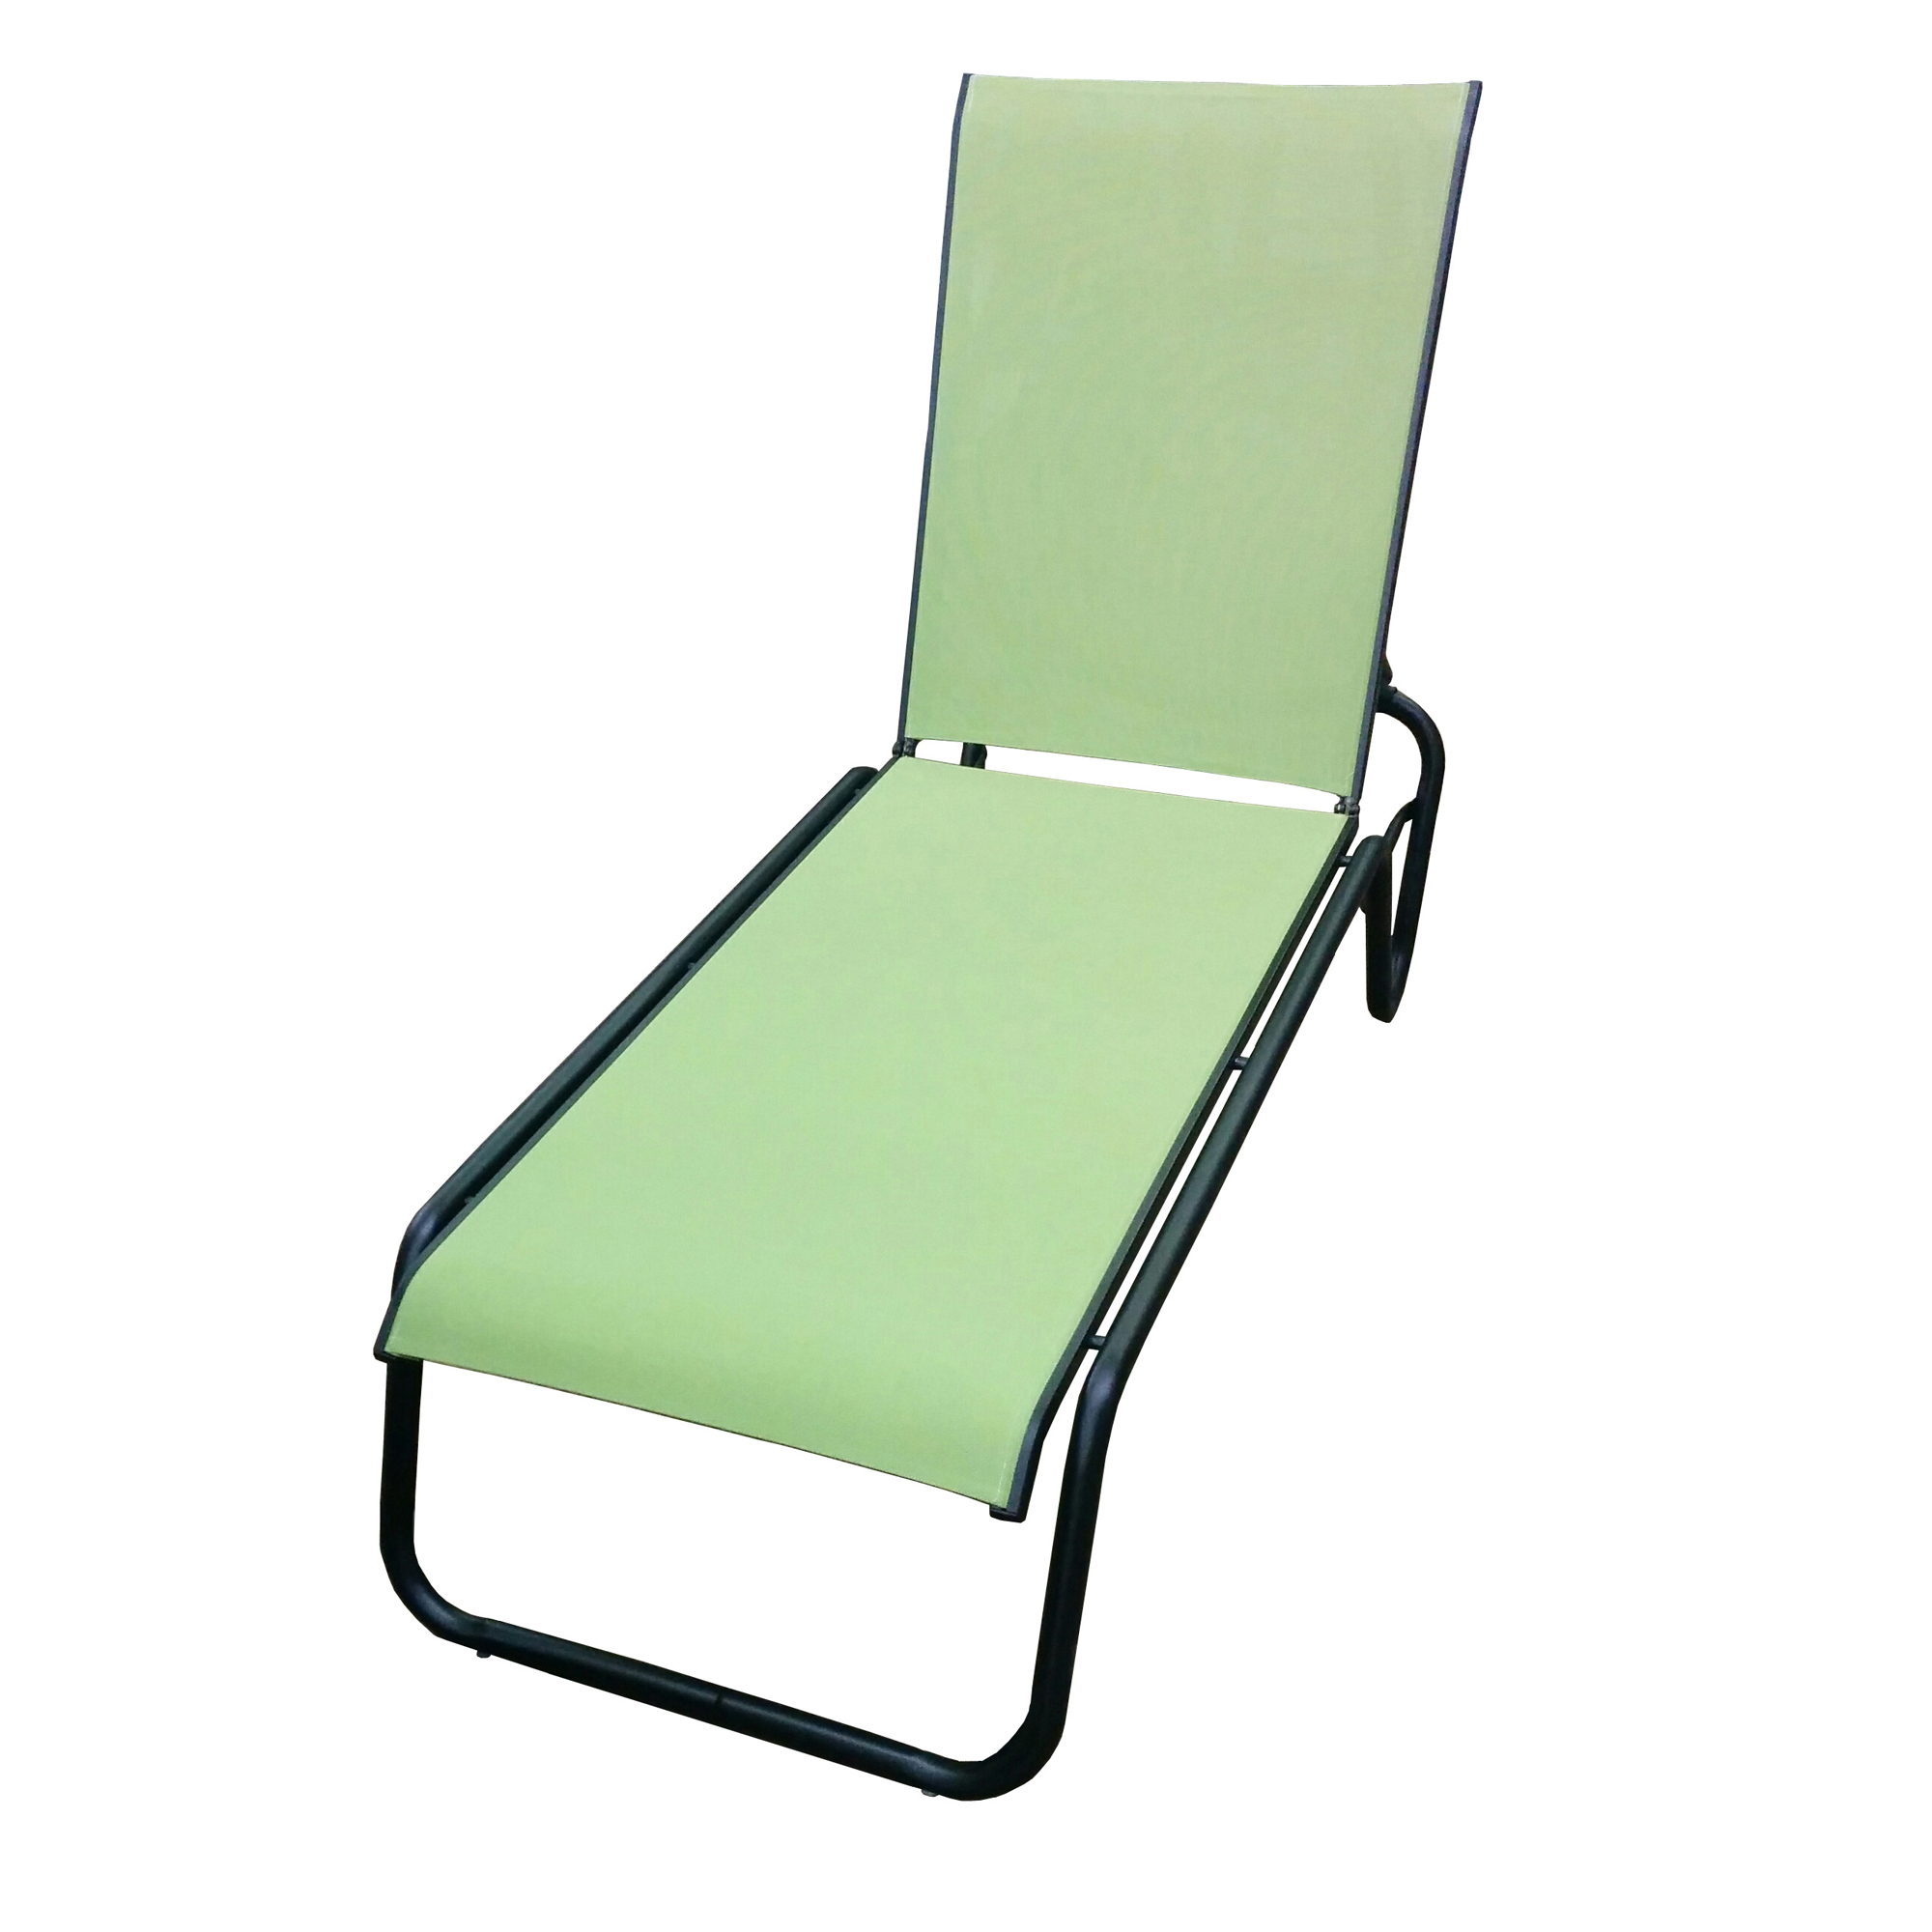 design pinterest dbd london davies furniture east chaise green pin victorian sofas home lounge by vintage in retro